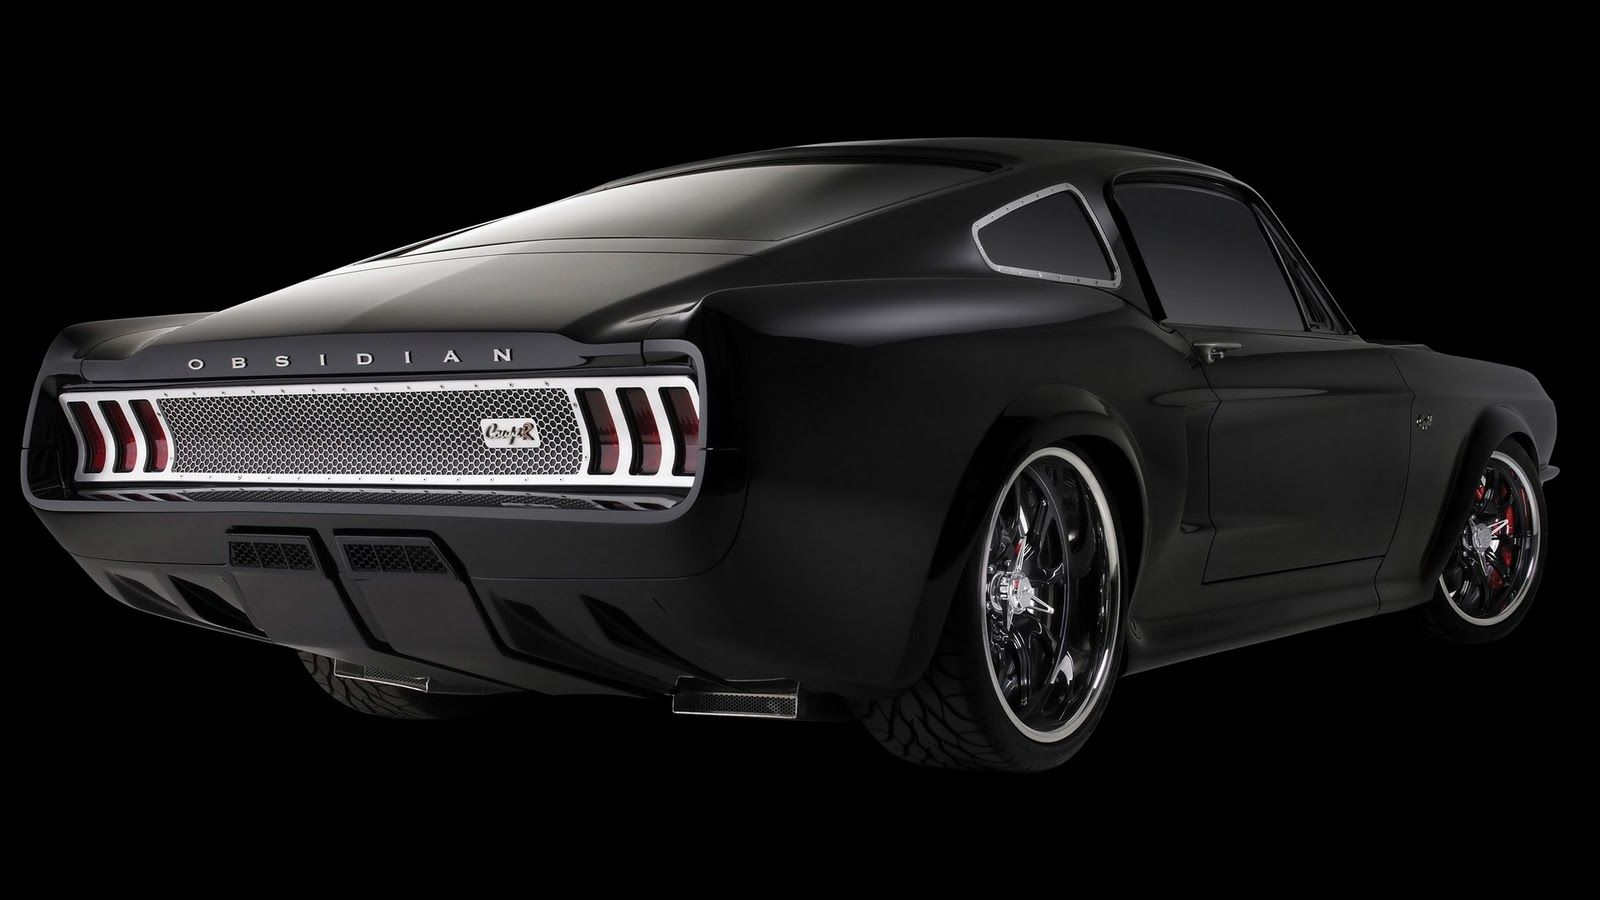 Black Ford Mustang Wallpapers Top Free Black Ford Mustang